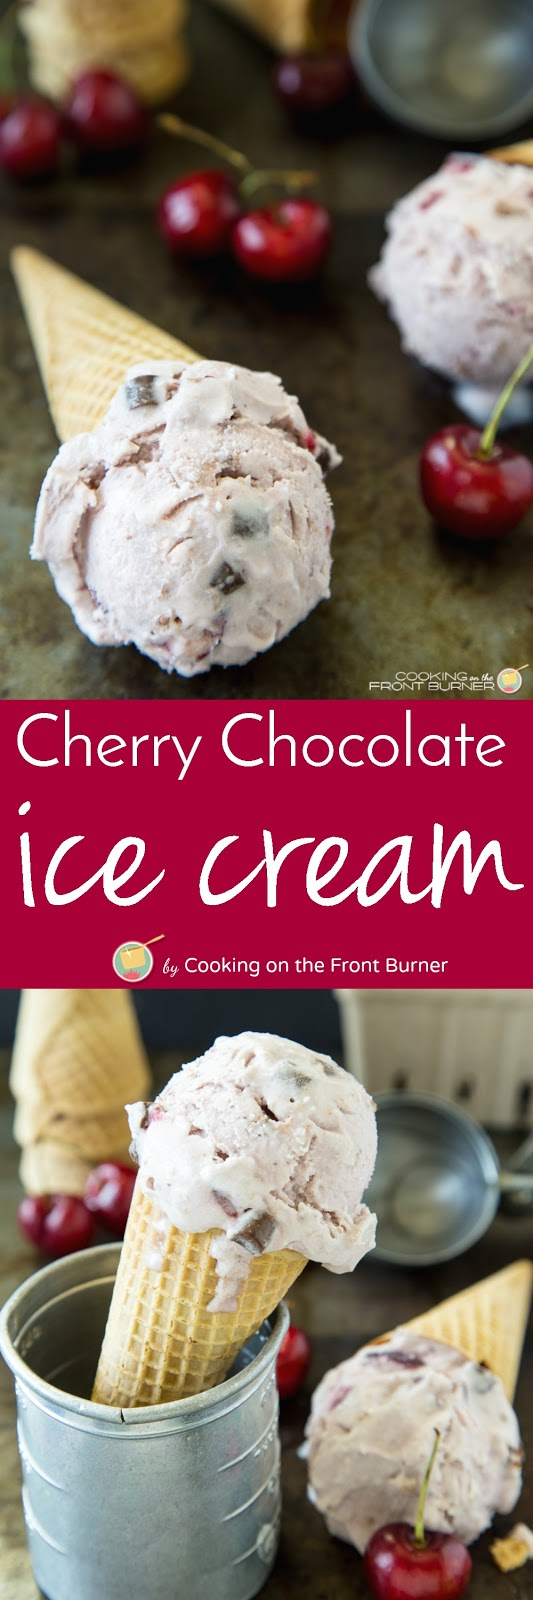 Keep cool and make your own Fresh Cherry Chocolate Ice Cream!